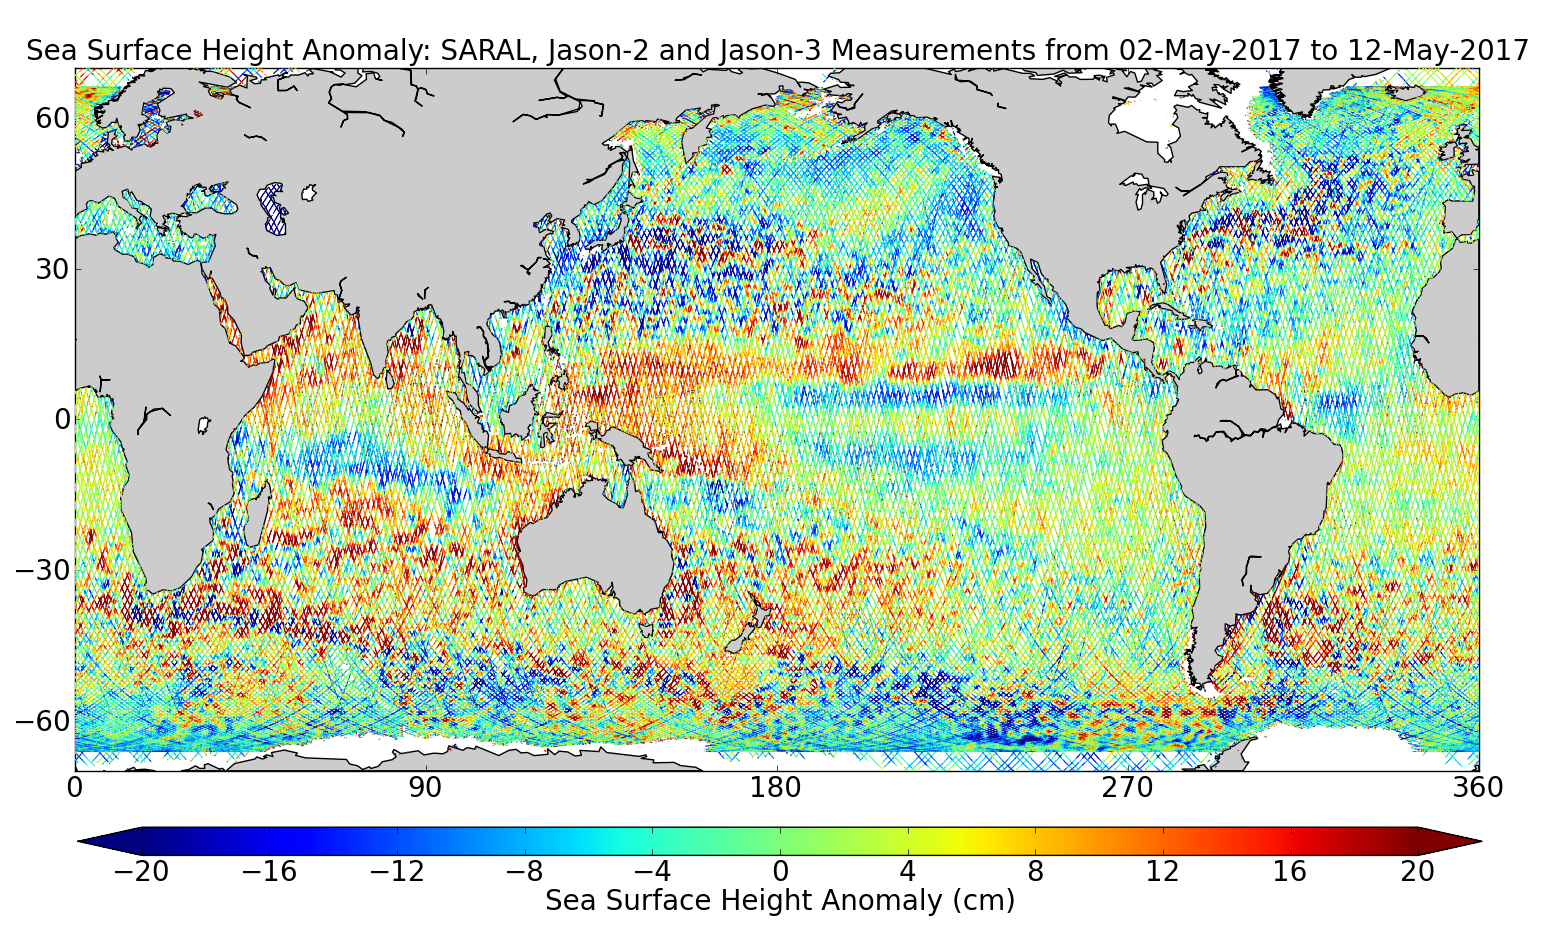 Sea Surface Height Anomaly: SARAL, Jason-2 and Jason-3 Measurements from 02-May-2017 to 12-May-2017